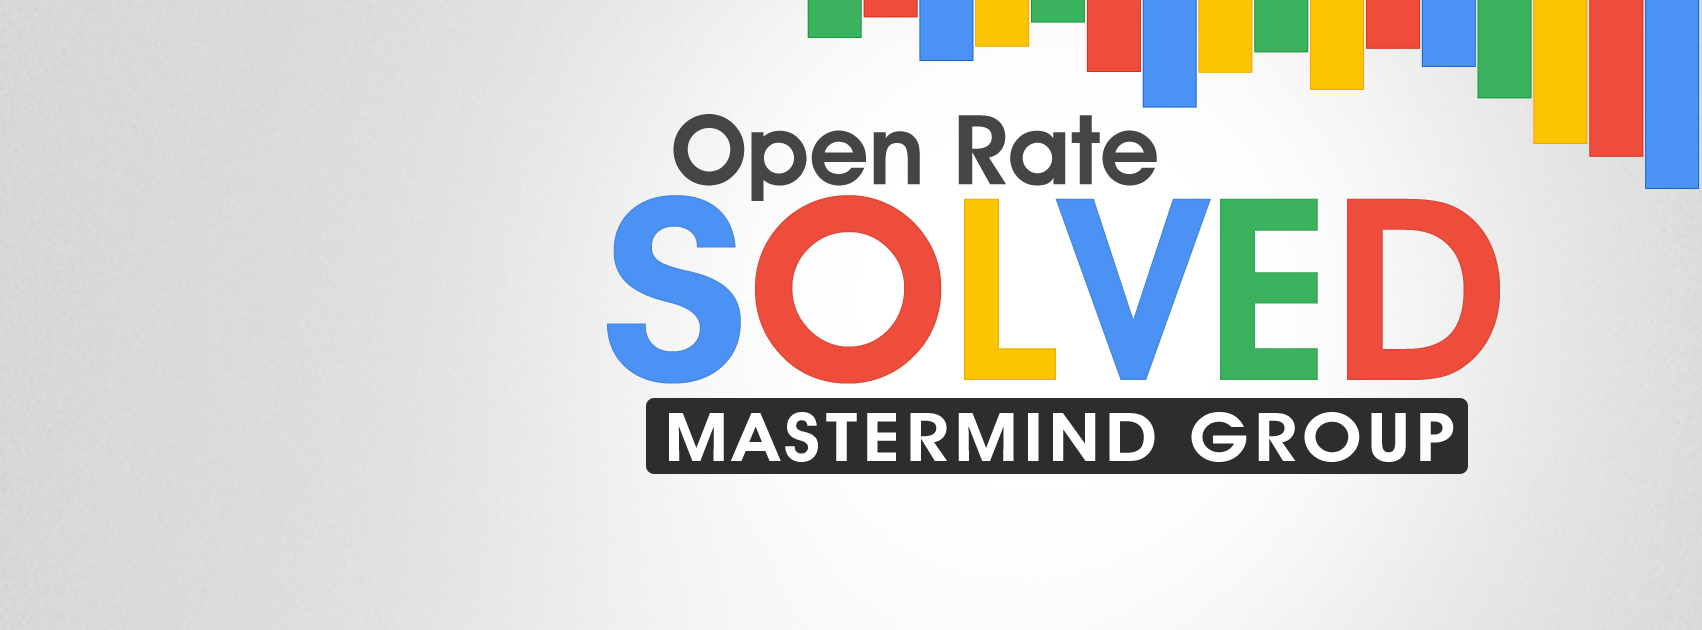 open-rate-solved-mastermind-group